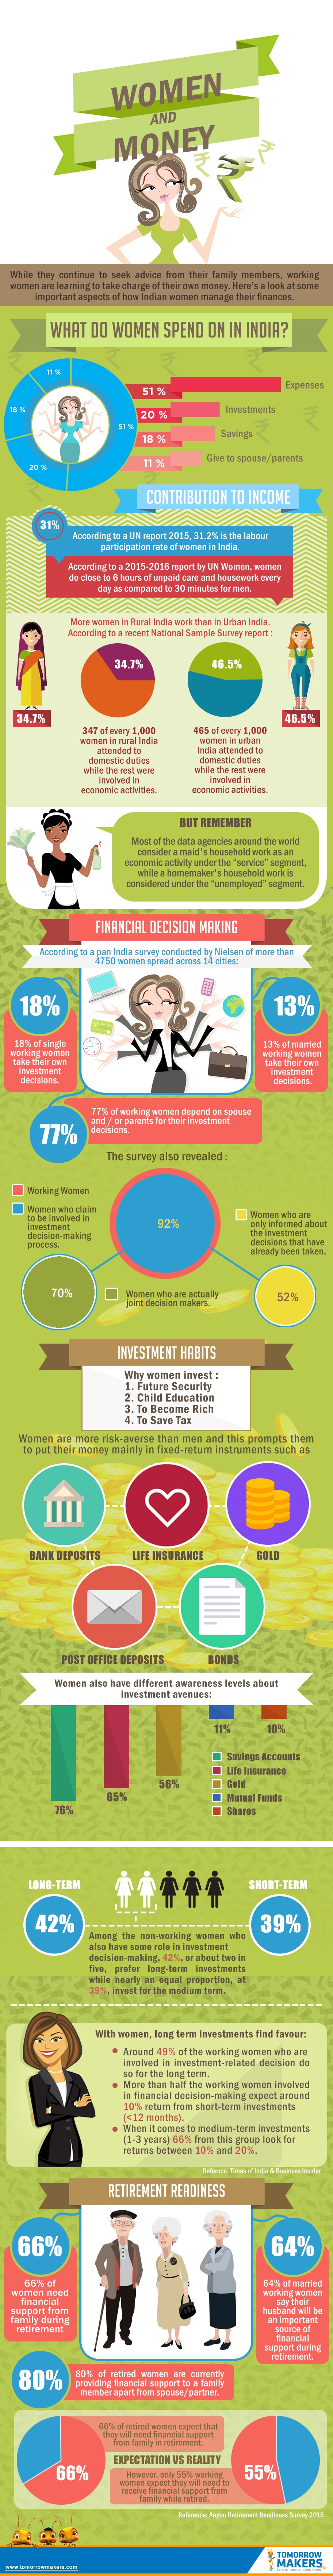 women-and-money-infographic